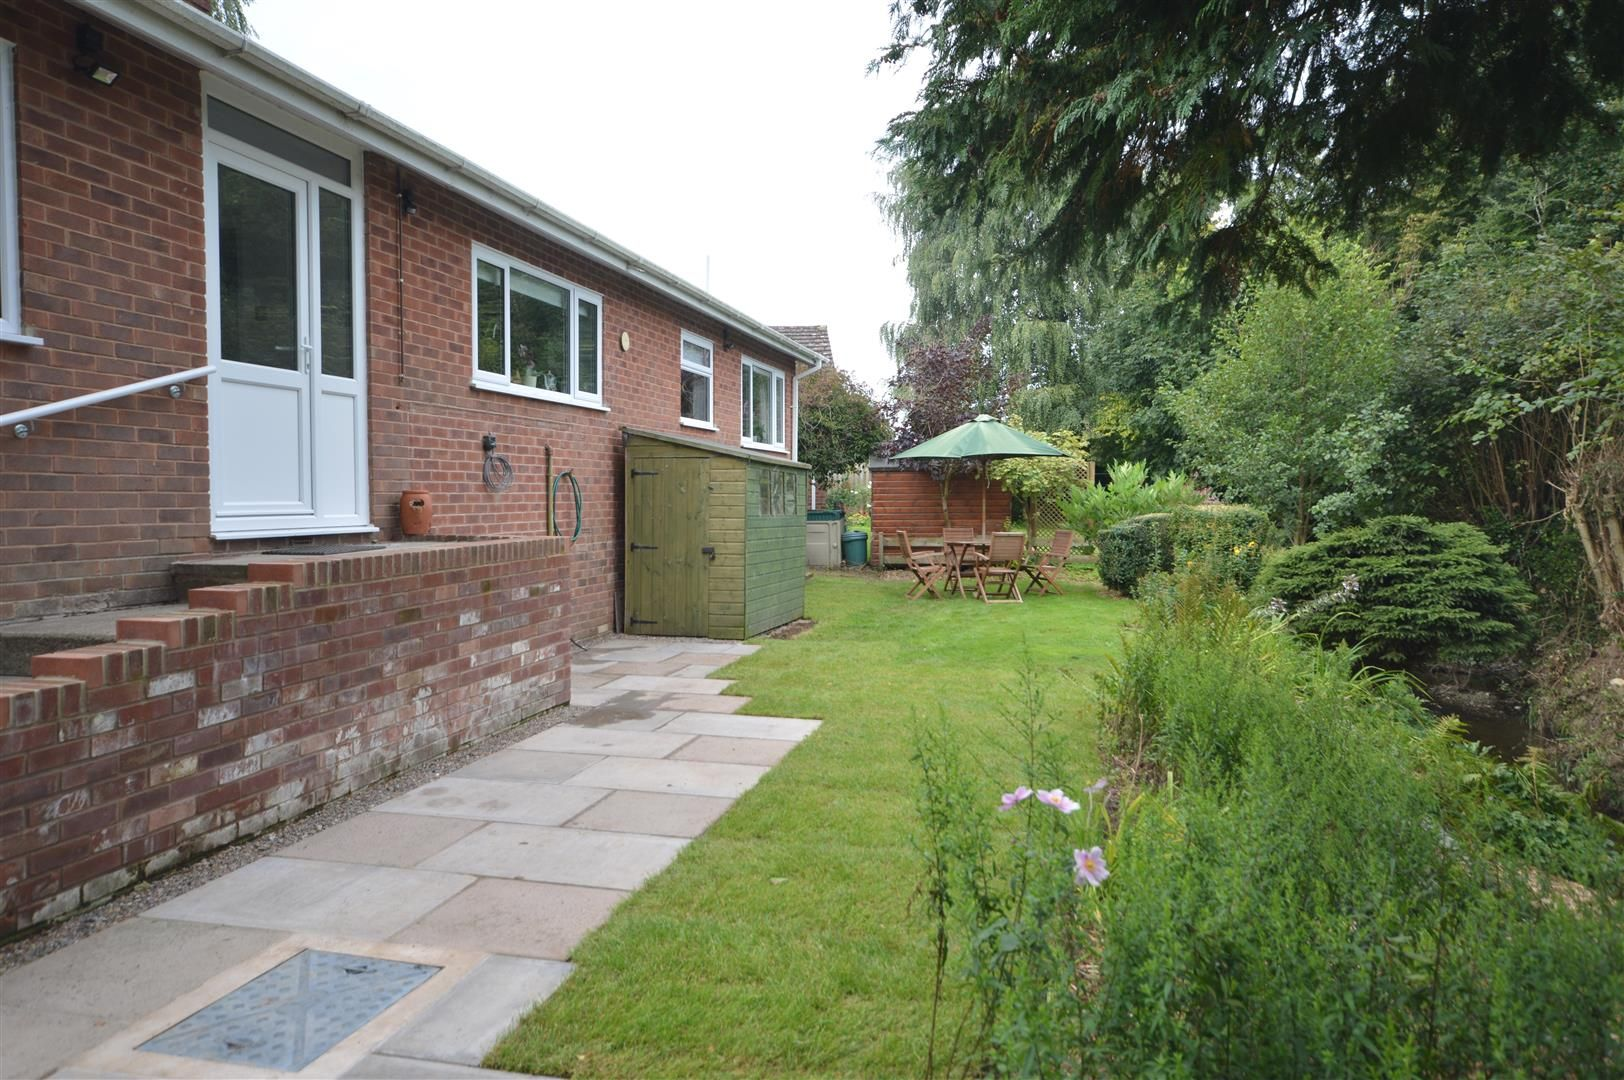 3 bed detached-bungalow for sale in Orleton  - Property Image 15